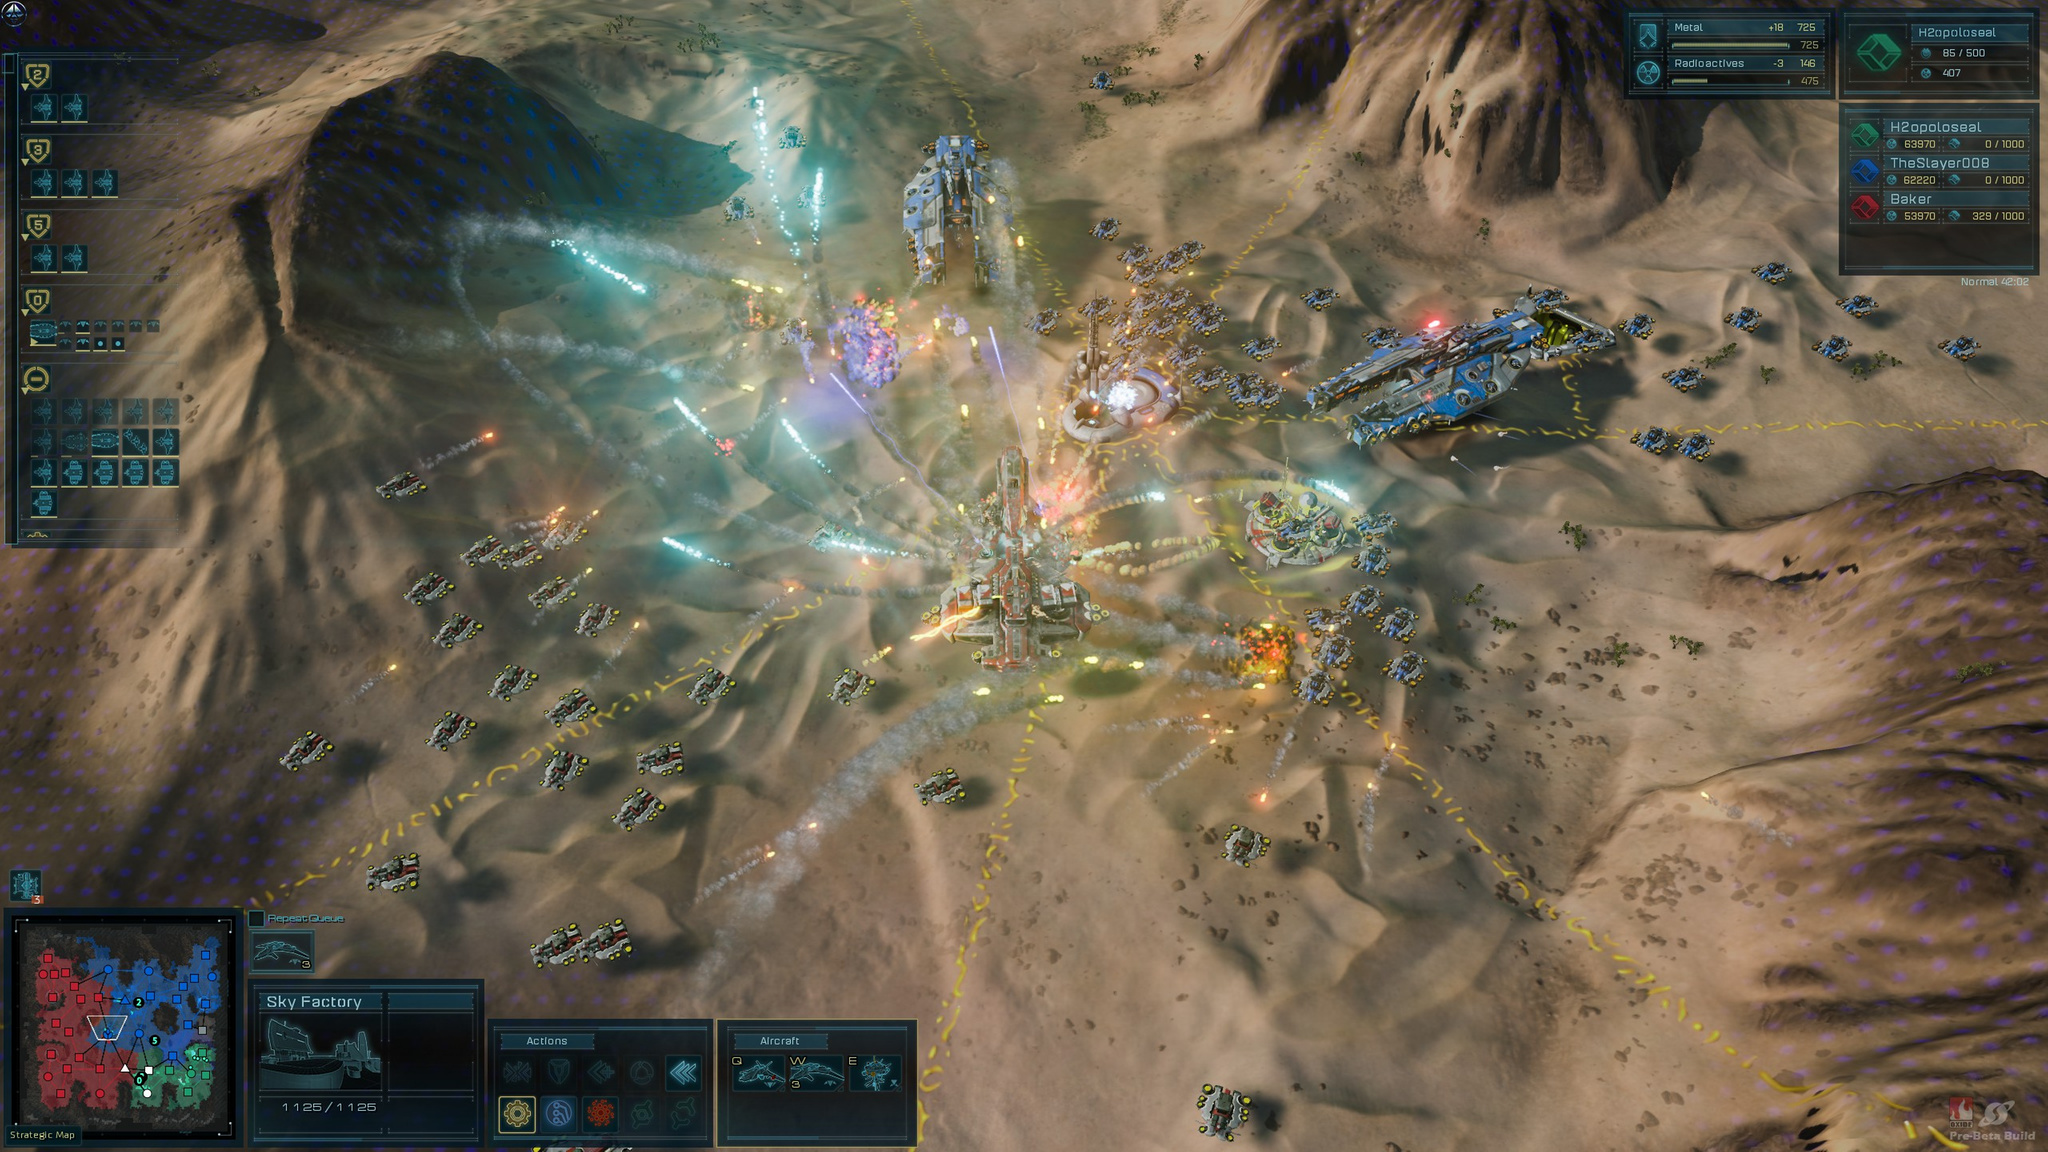 AMD Collaborates With Stardock For Ashes Of The Singularity